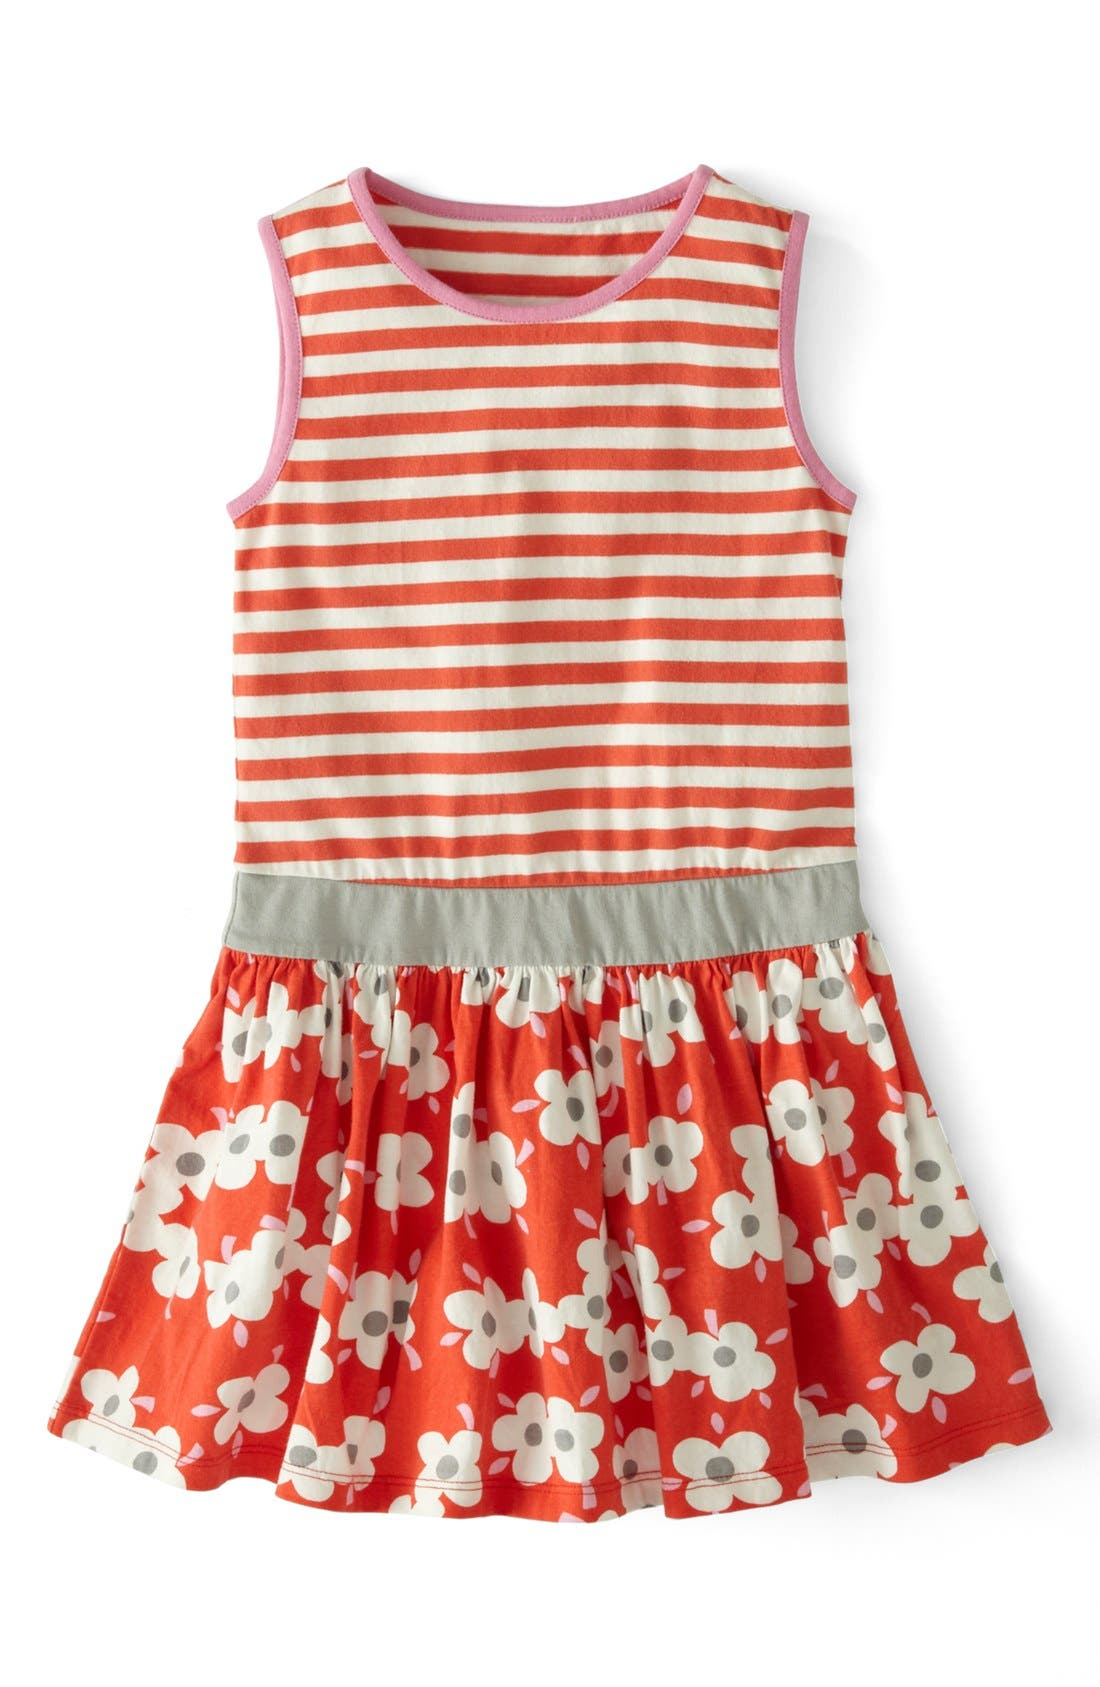 Alternate Image 1 Selected - Mini Boden 'Jolly' Cotton Jersey Dress (Toddler Girls)